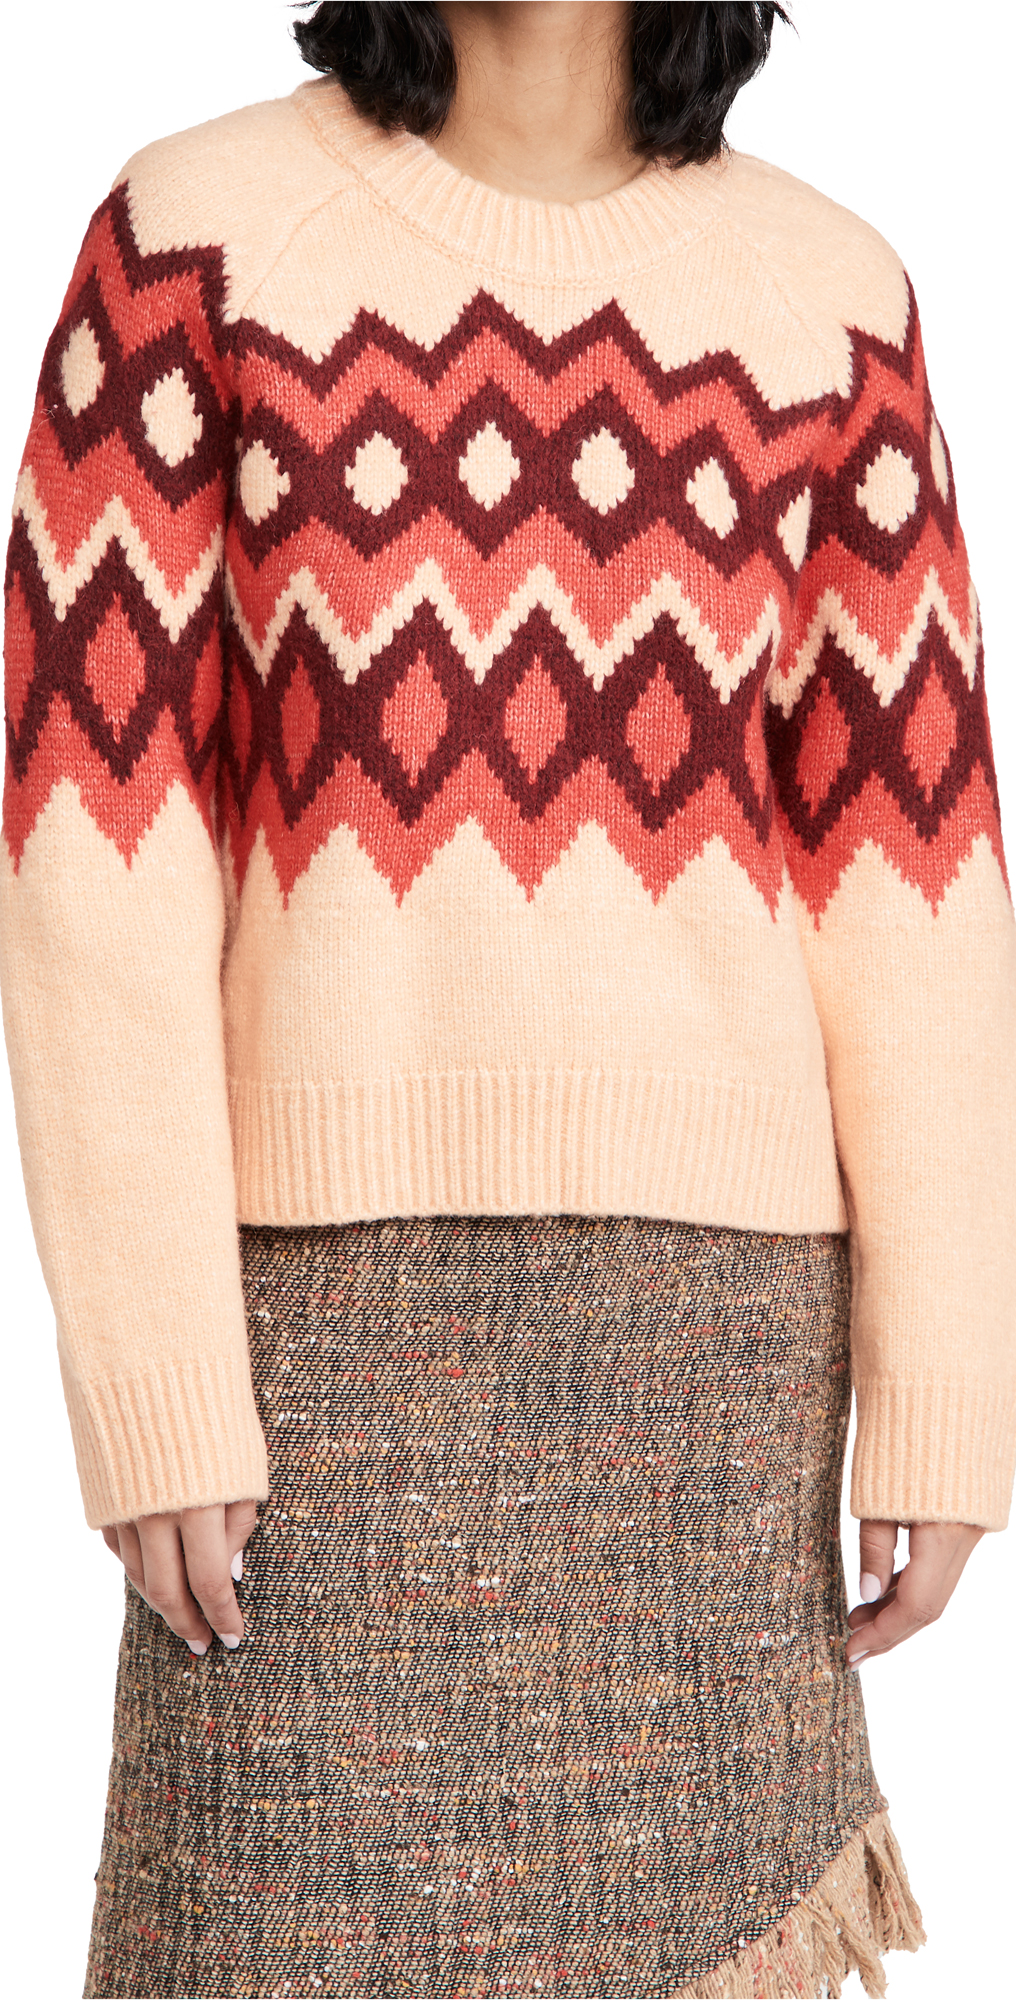 Joie Nataly Sweater